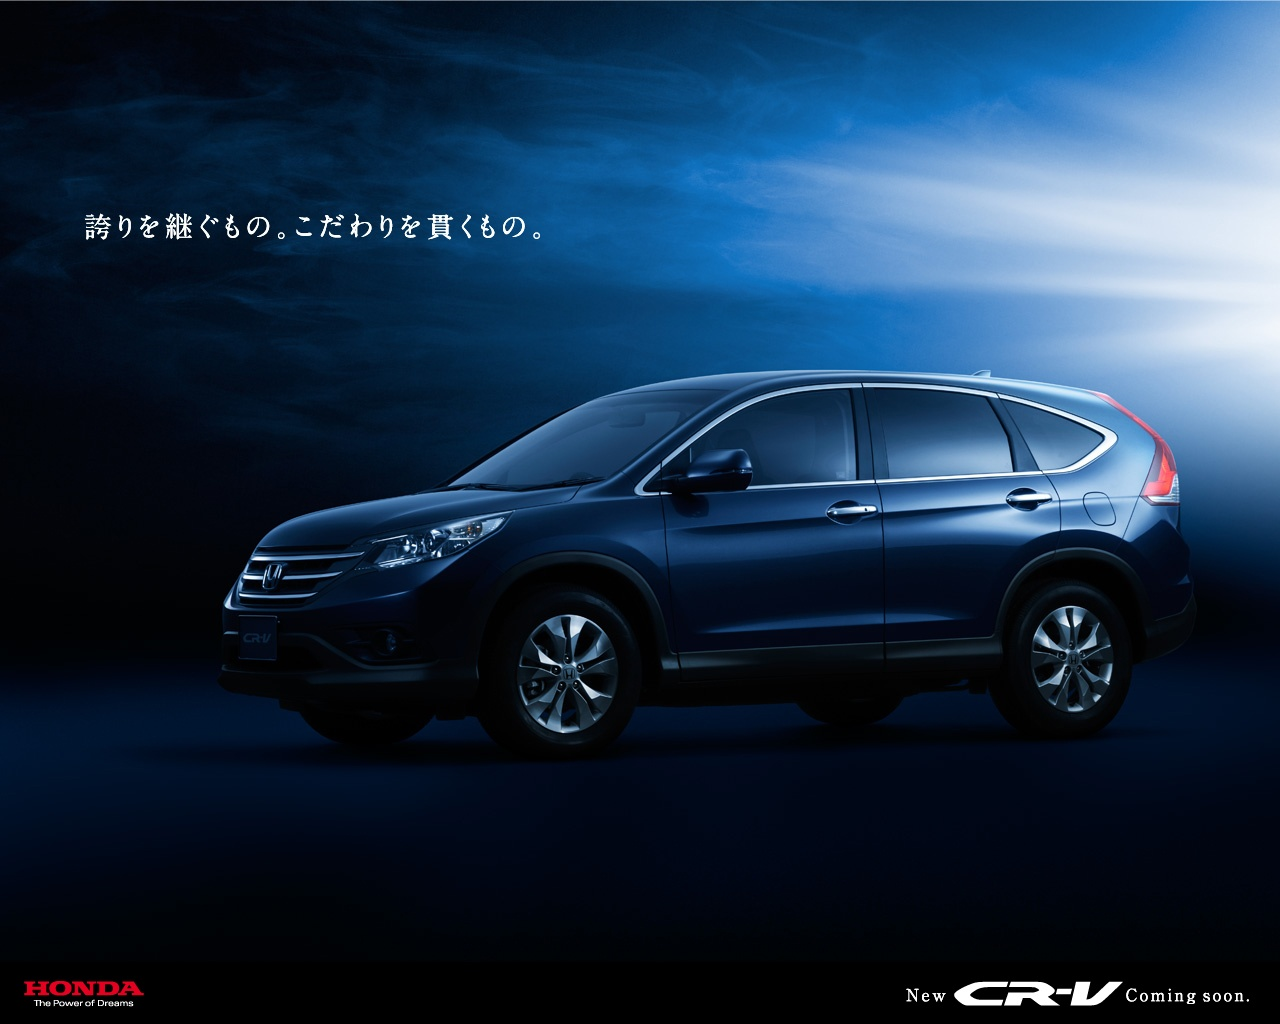 official 2012 honda cr v wallpapers on hondas japan site motor trend